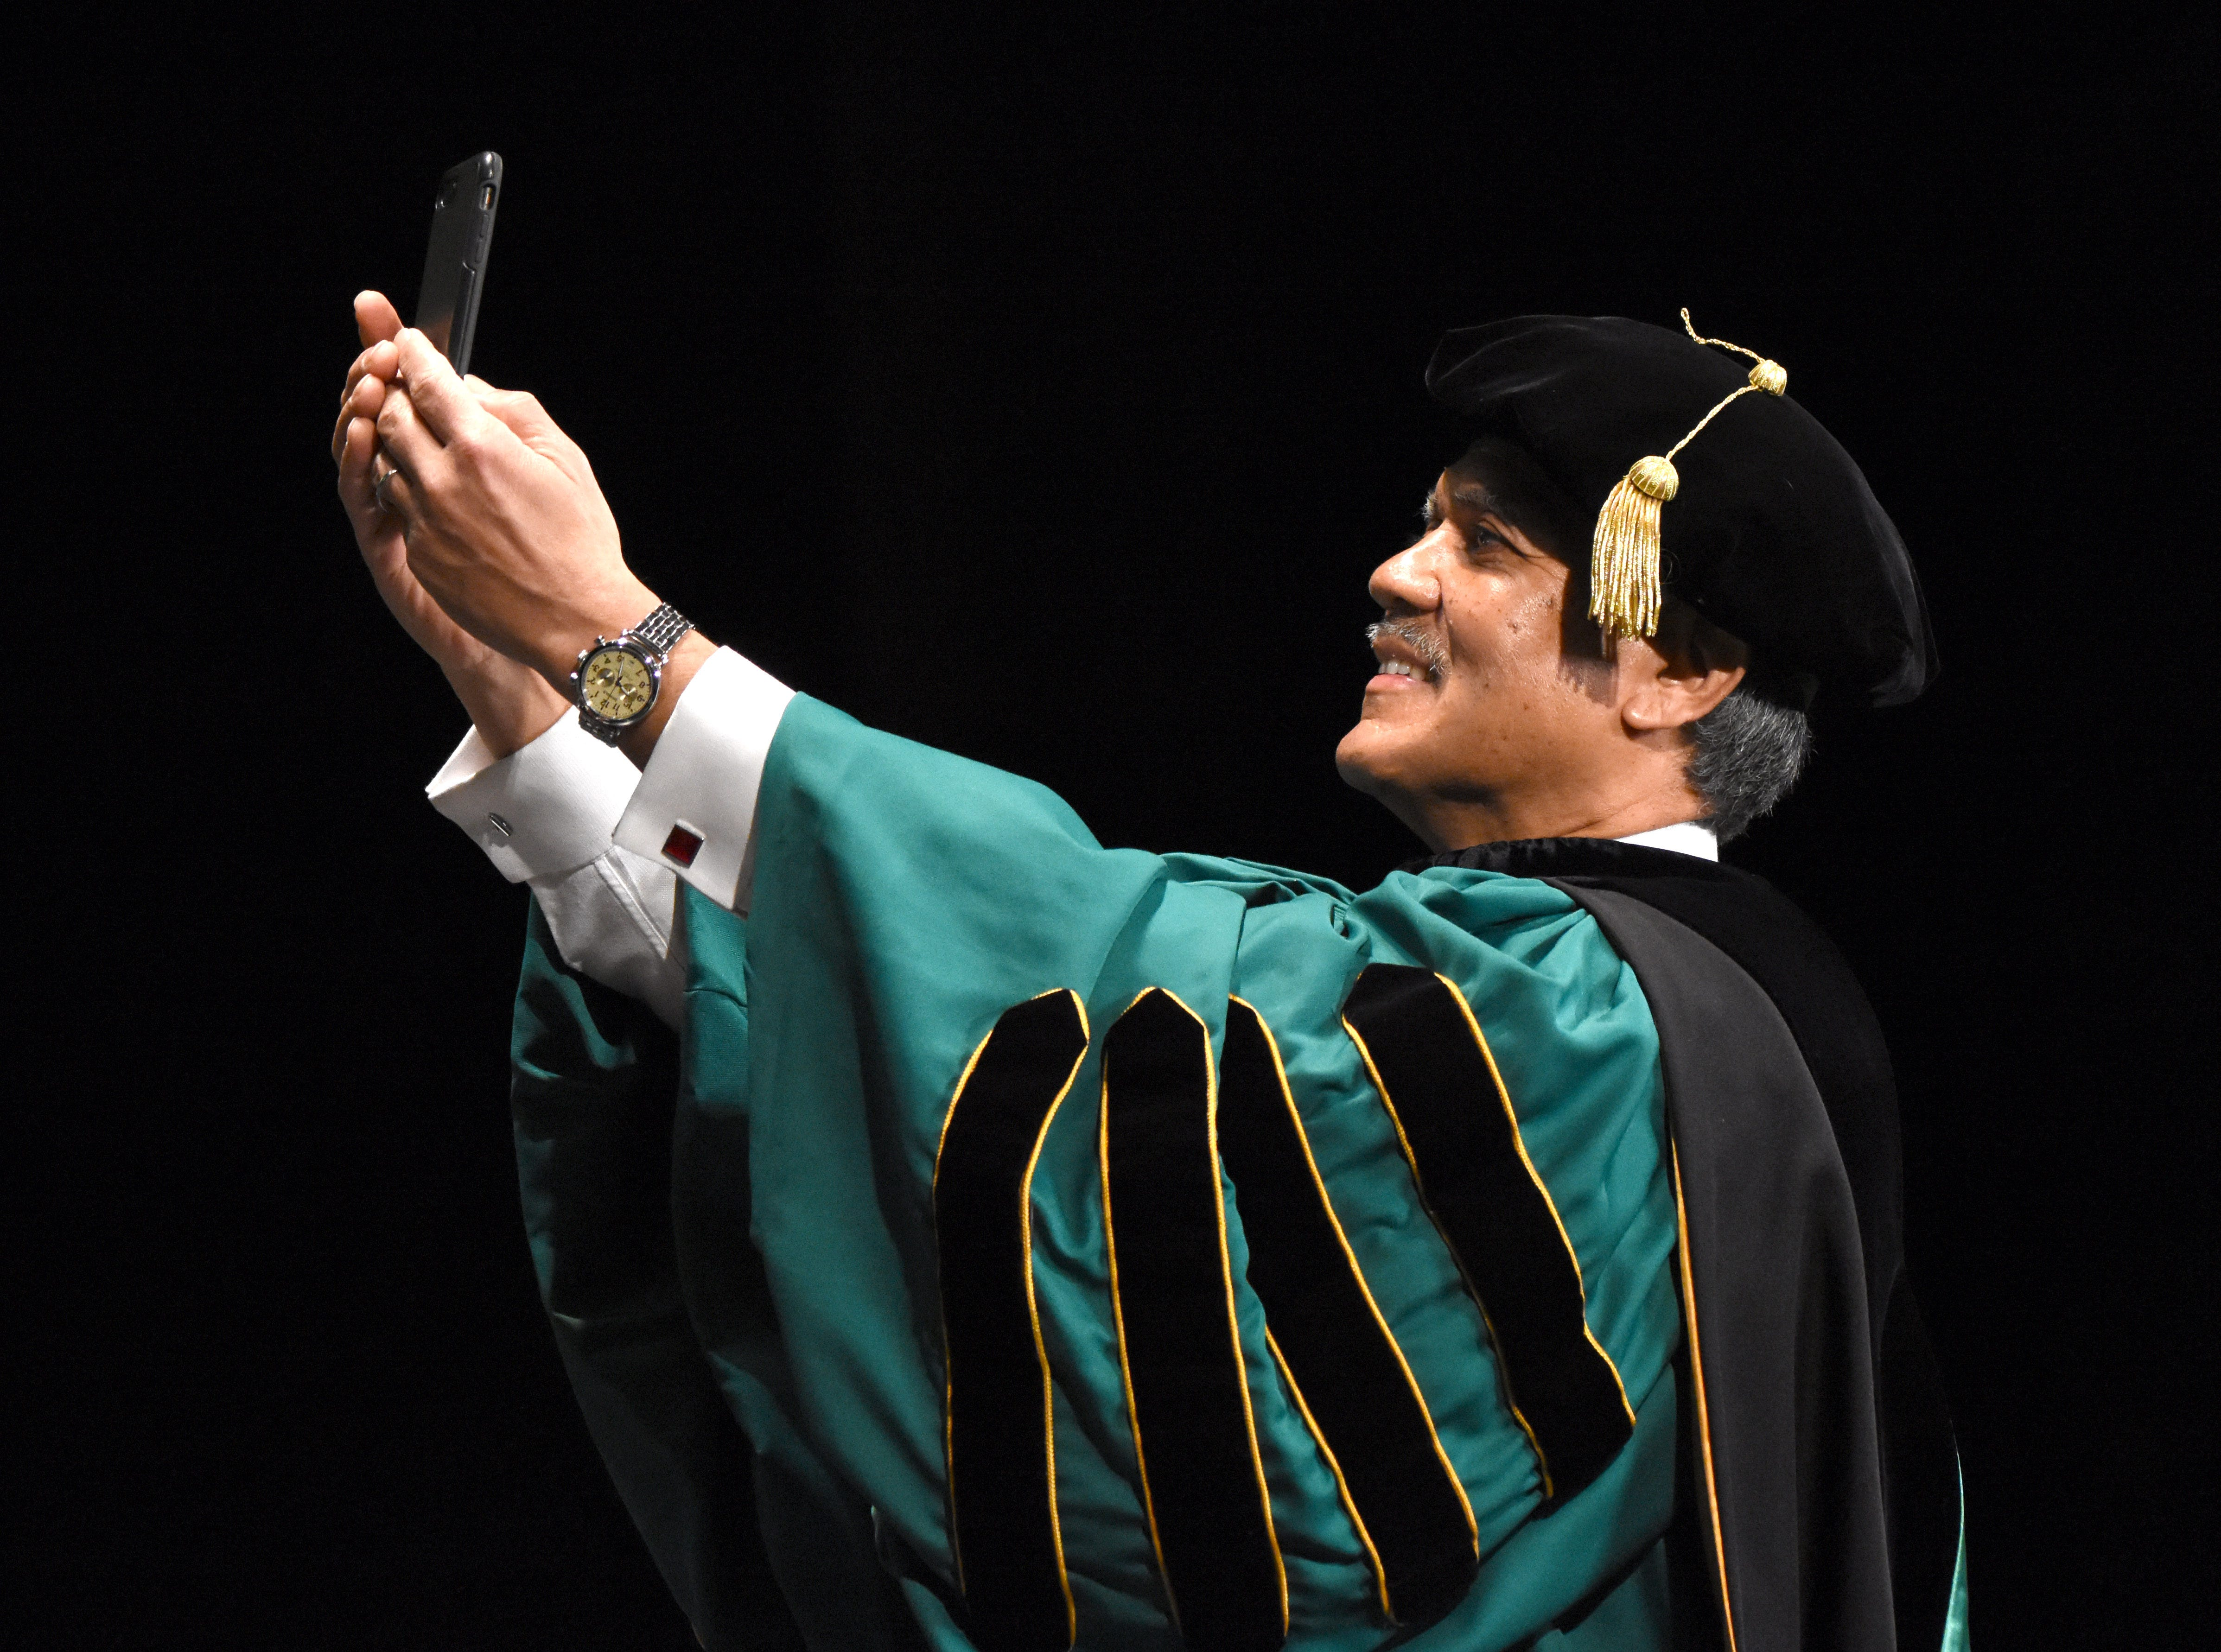 Wayne State University President M. Roy Wilson takes a selfie during commencement exercises at the Fox Theatre on Friday, May 3, 2019.